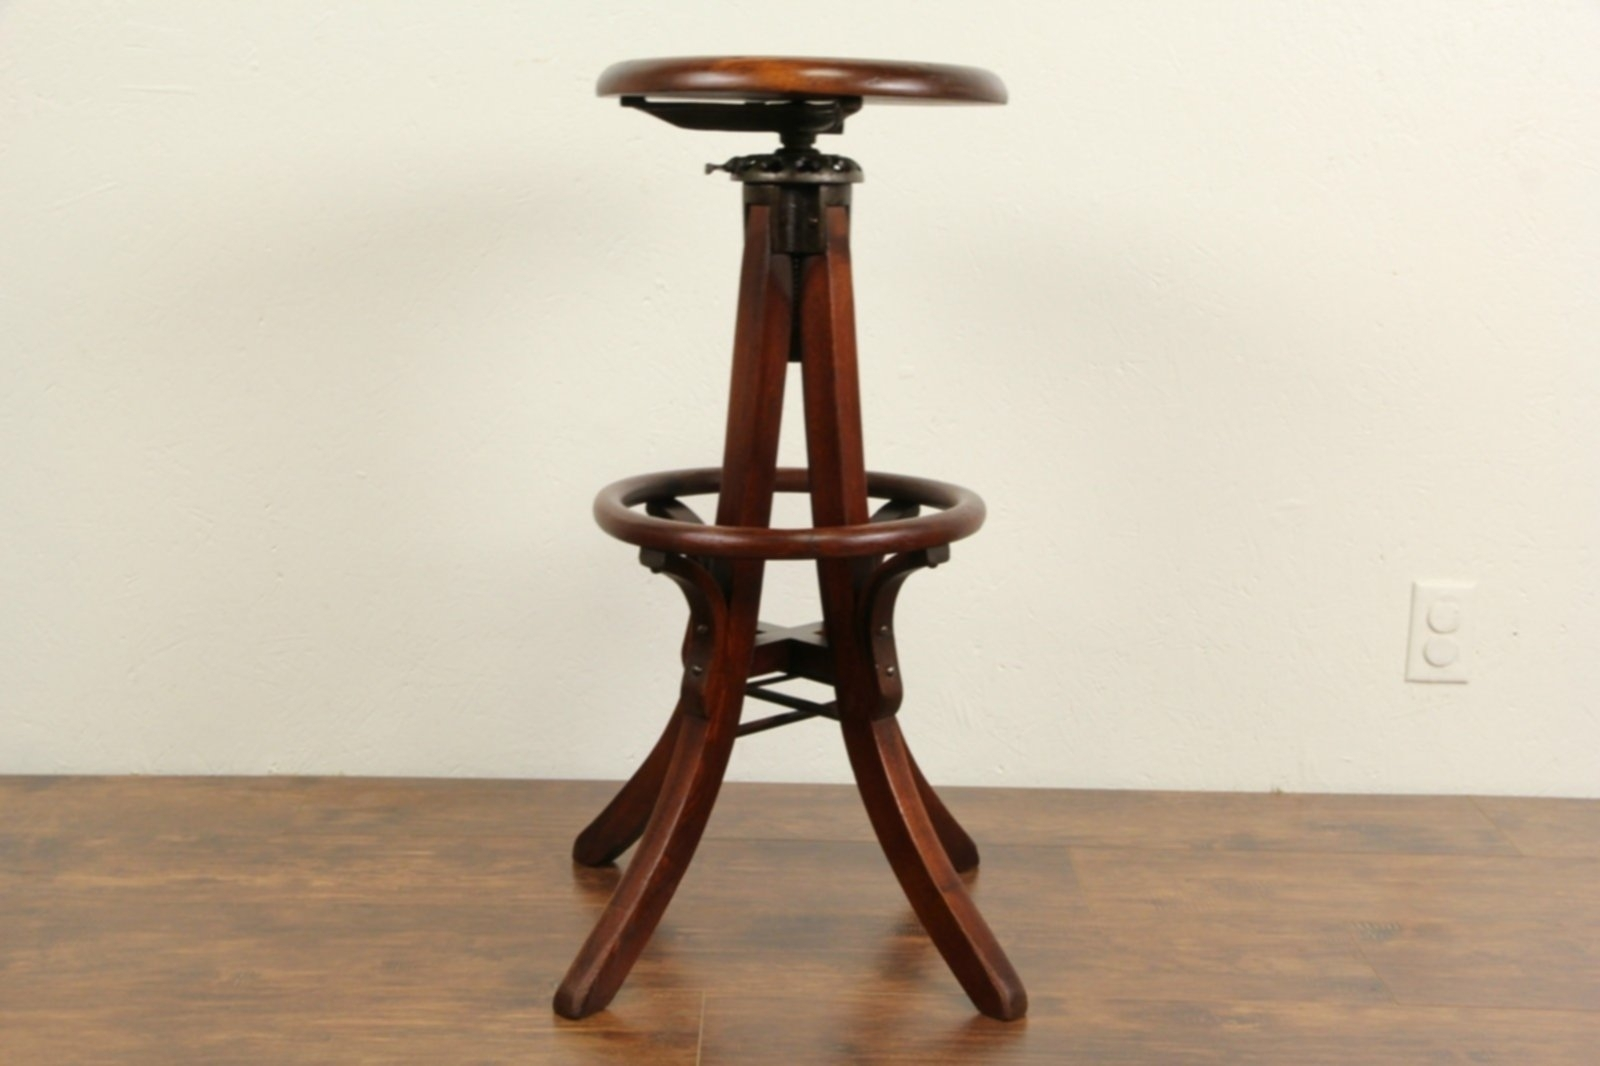 Awesome Vintage Drafting Stool Wood Randolph Indoor And Outdoor Design Alphanode Cool Chair Designs And Ideas Alphanodeonline